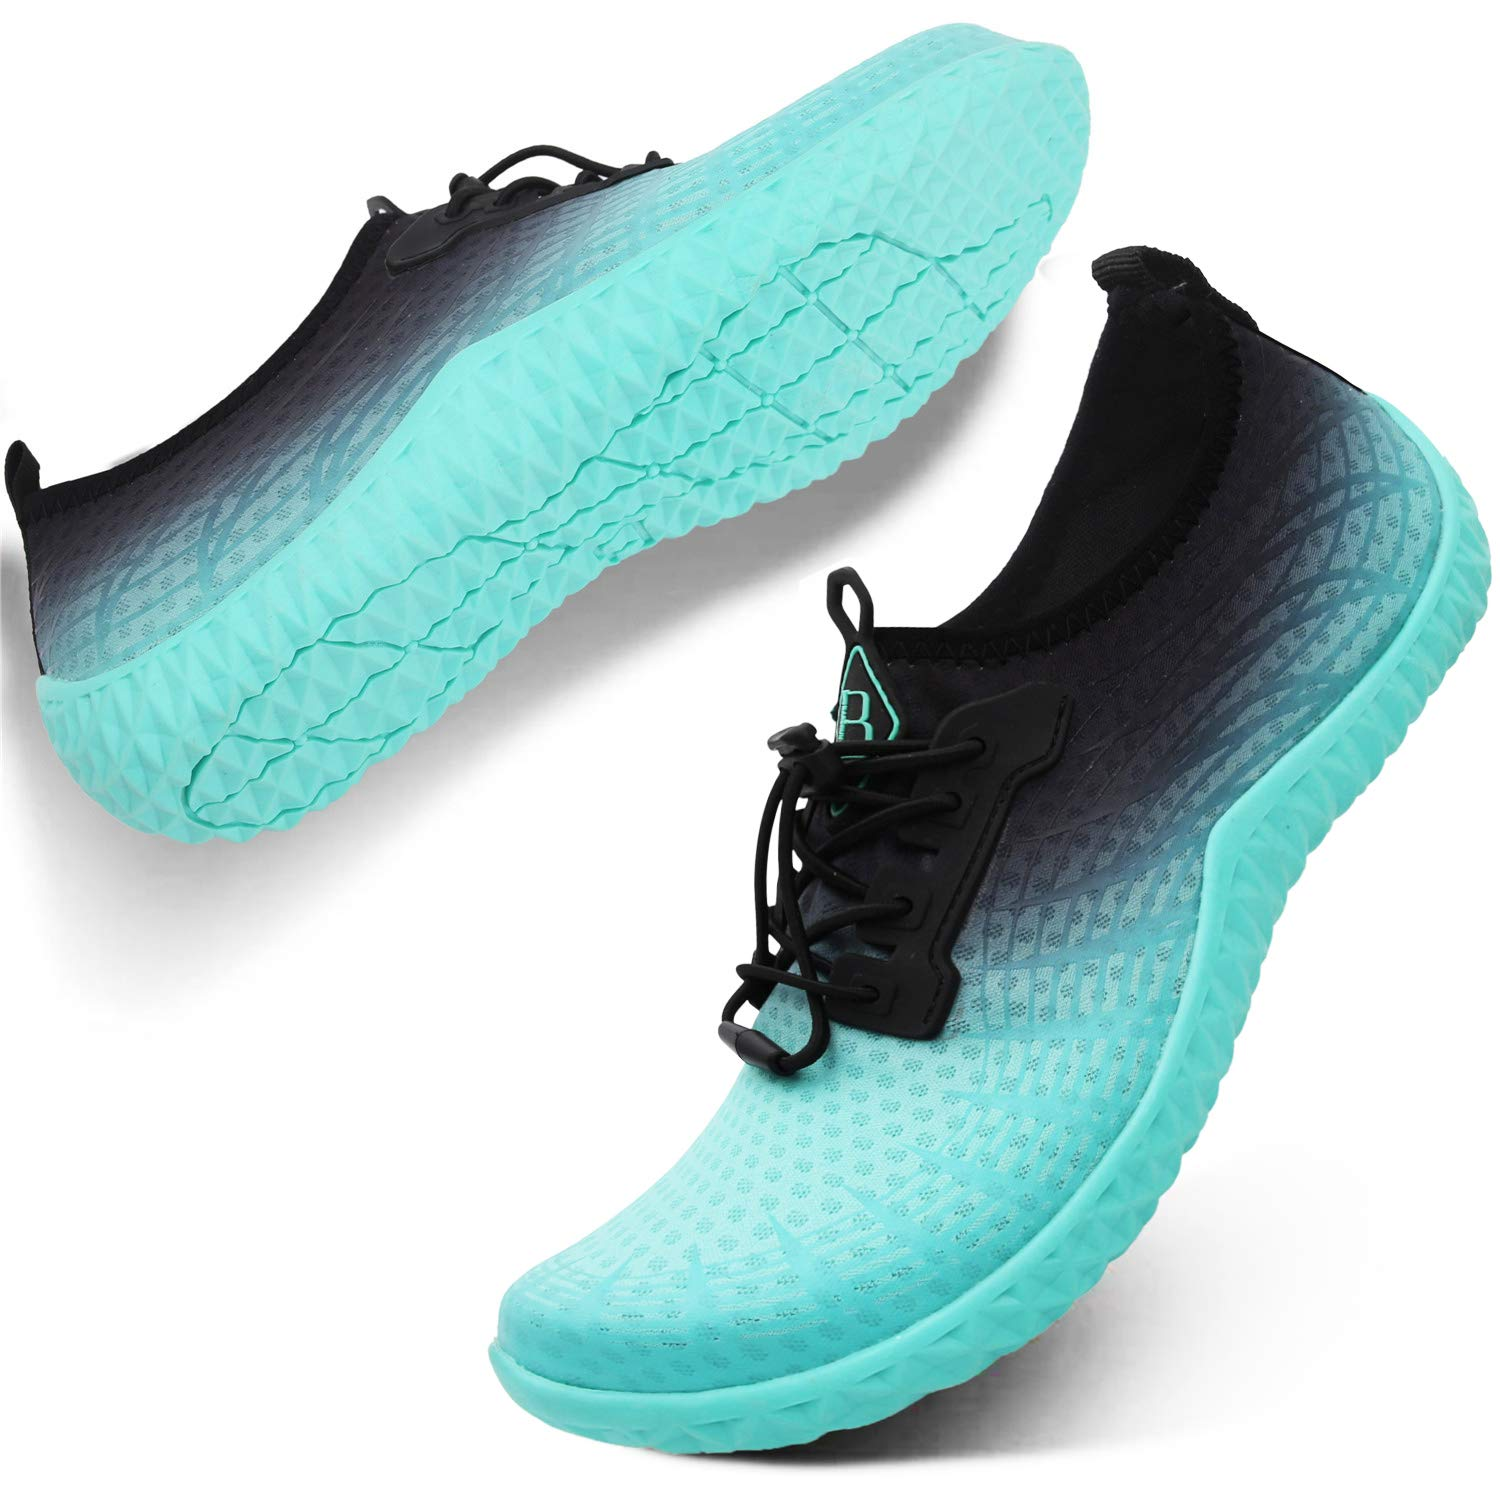 Spesoul Womens Mens Water Sports Shoes Outdoor Quick Dry Barefoot Athletic Aqua Shoe for Beach Swim Pool Surf Diving Yoga 8 Women by Spesoul